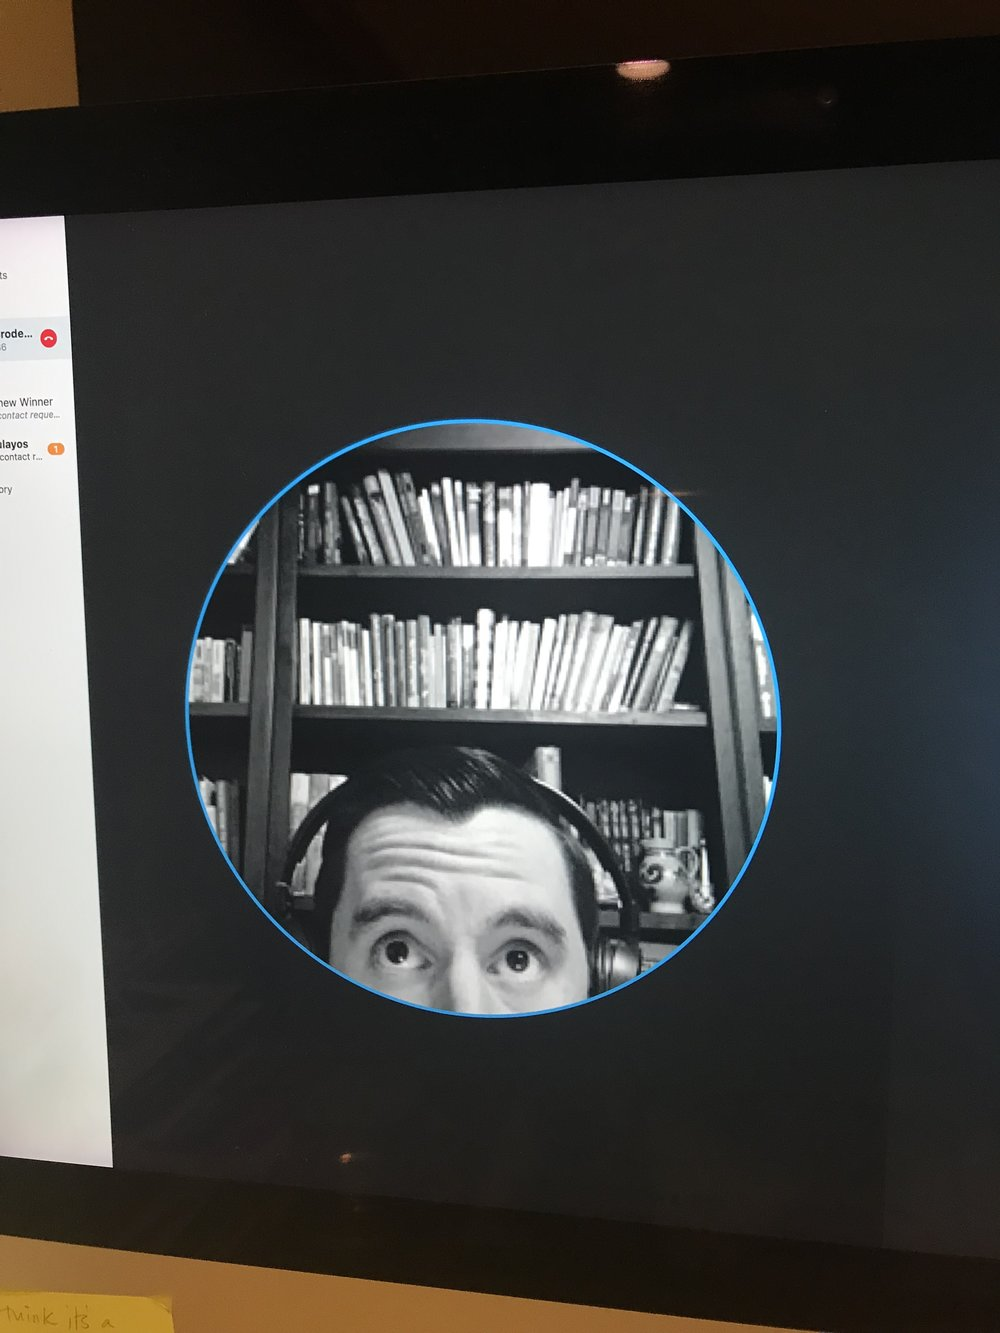 My computer screen image during my Skype interview with Matthew Winner — kept me smiling!